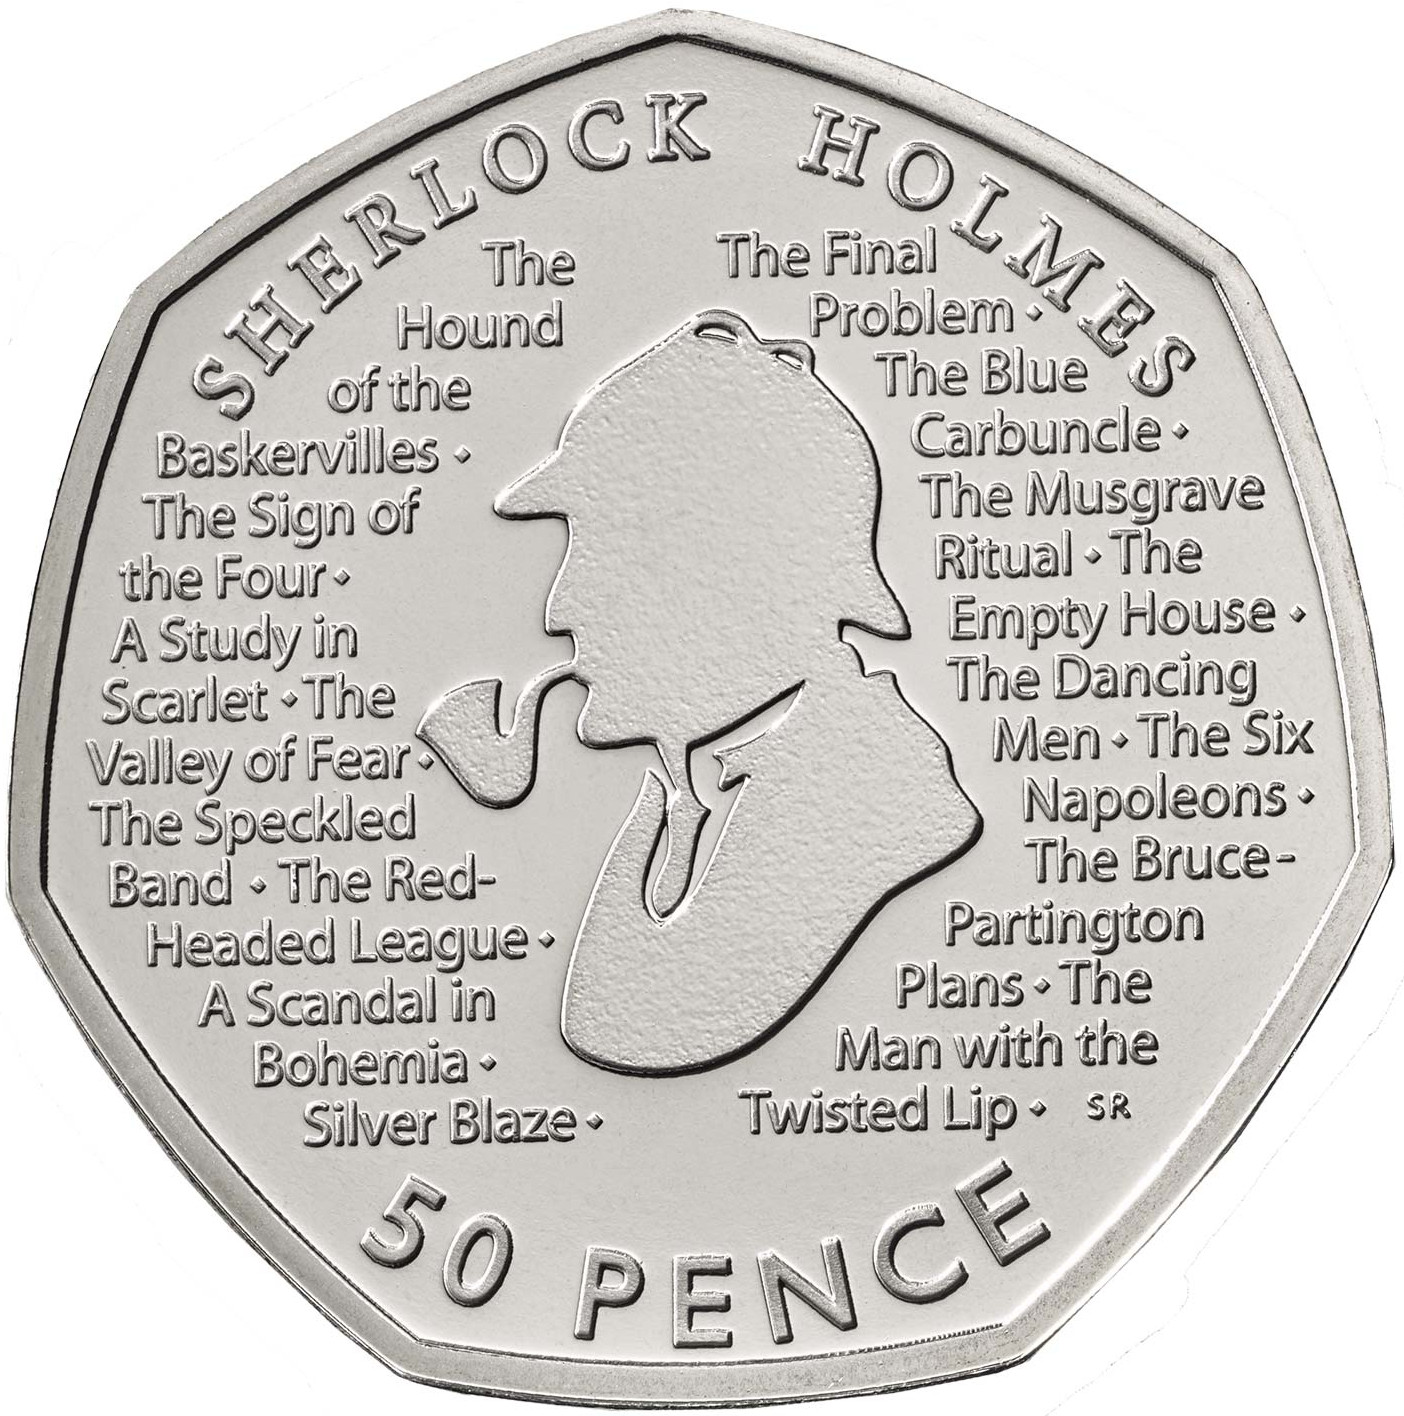 Fifty Pence 2019 Sherlock Holmes: Photo Sherlock Holmes 2019 UK 50p Brilliant Uncirculated Coin